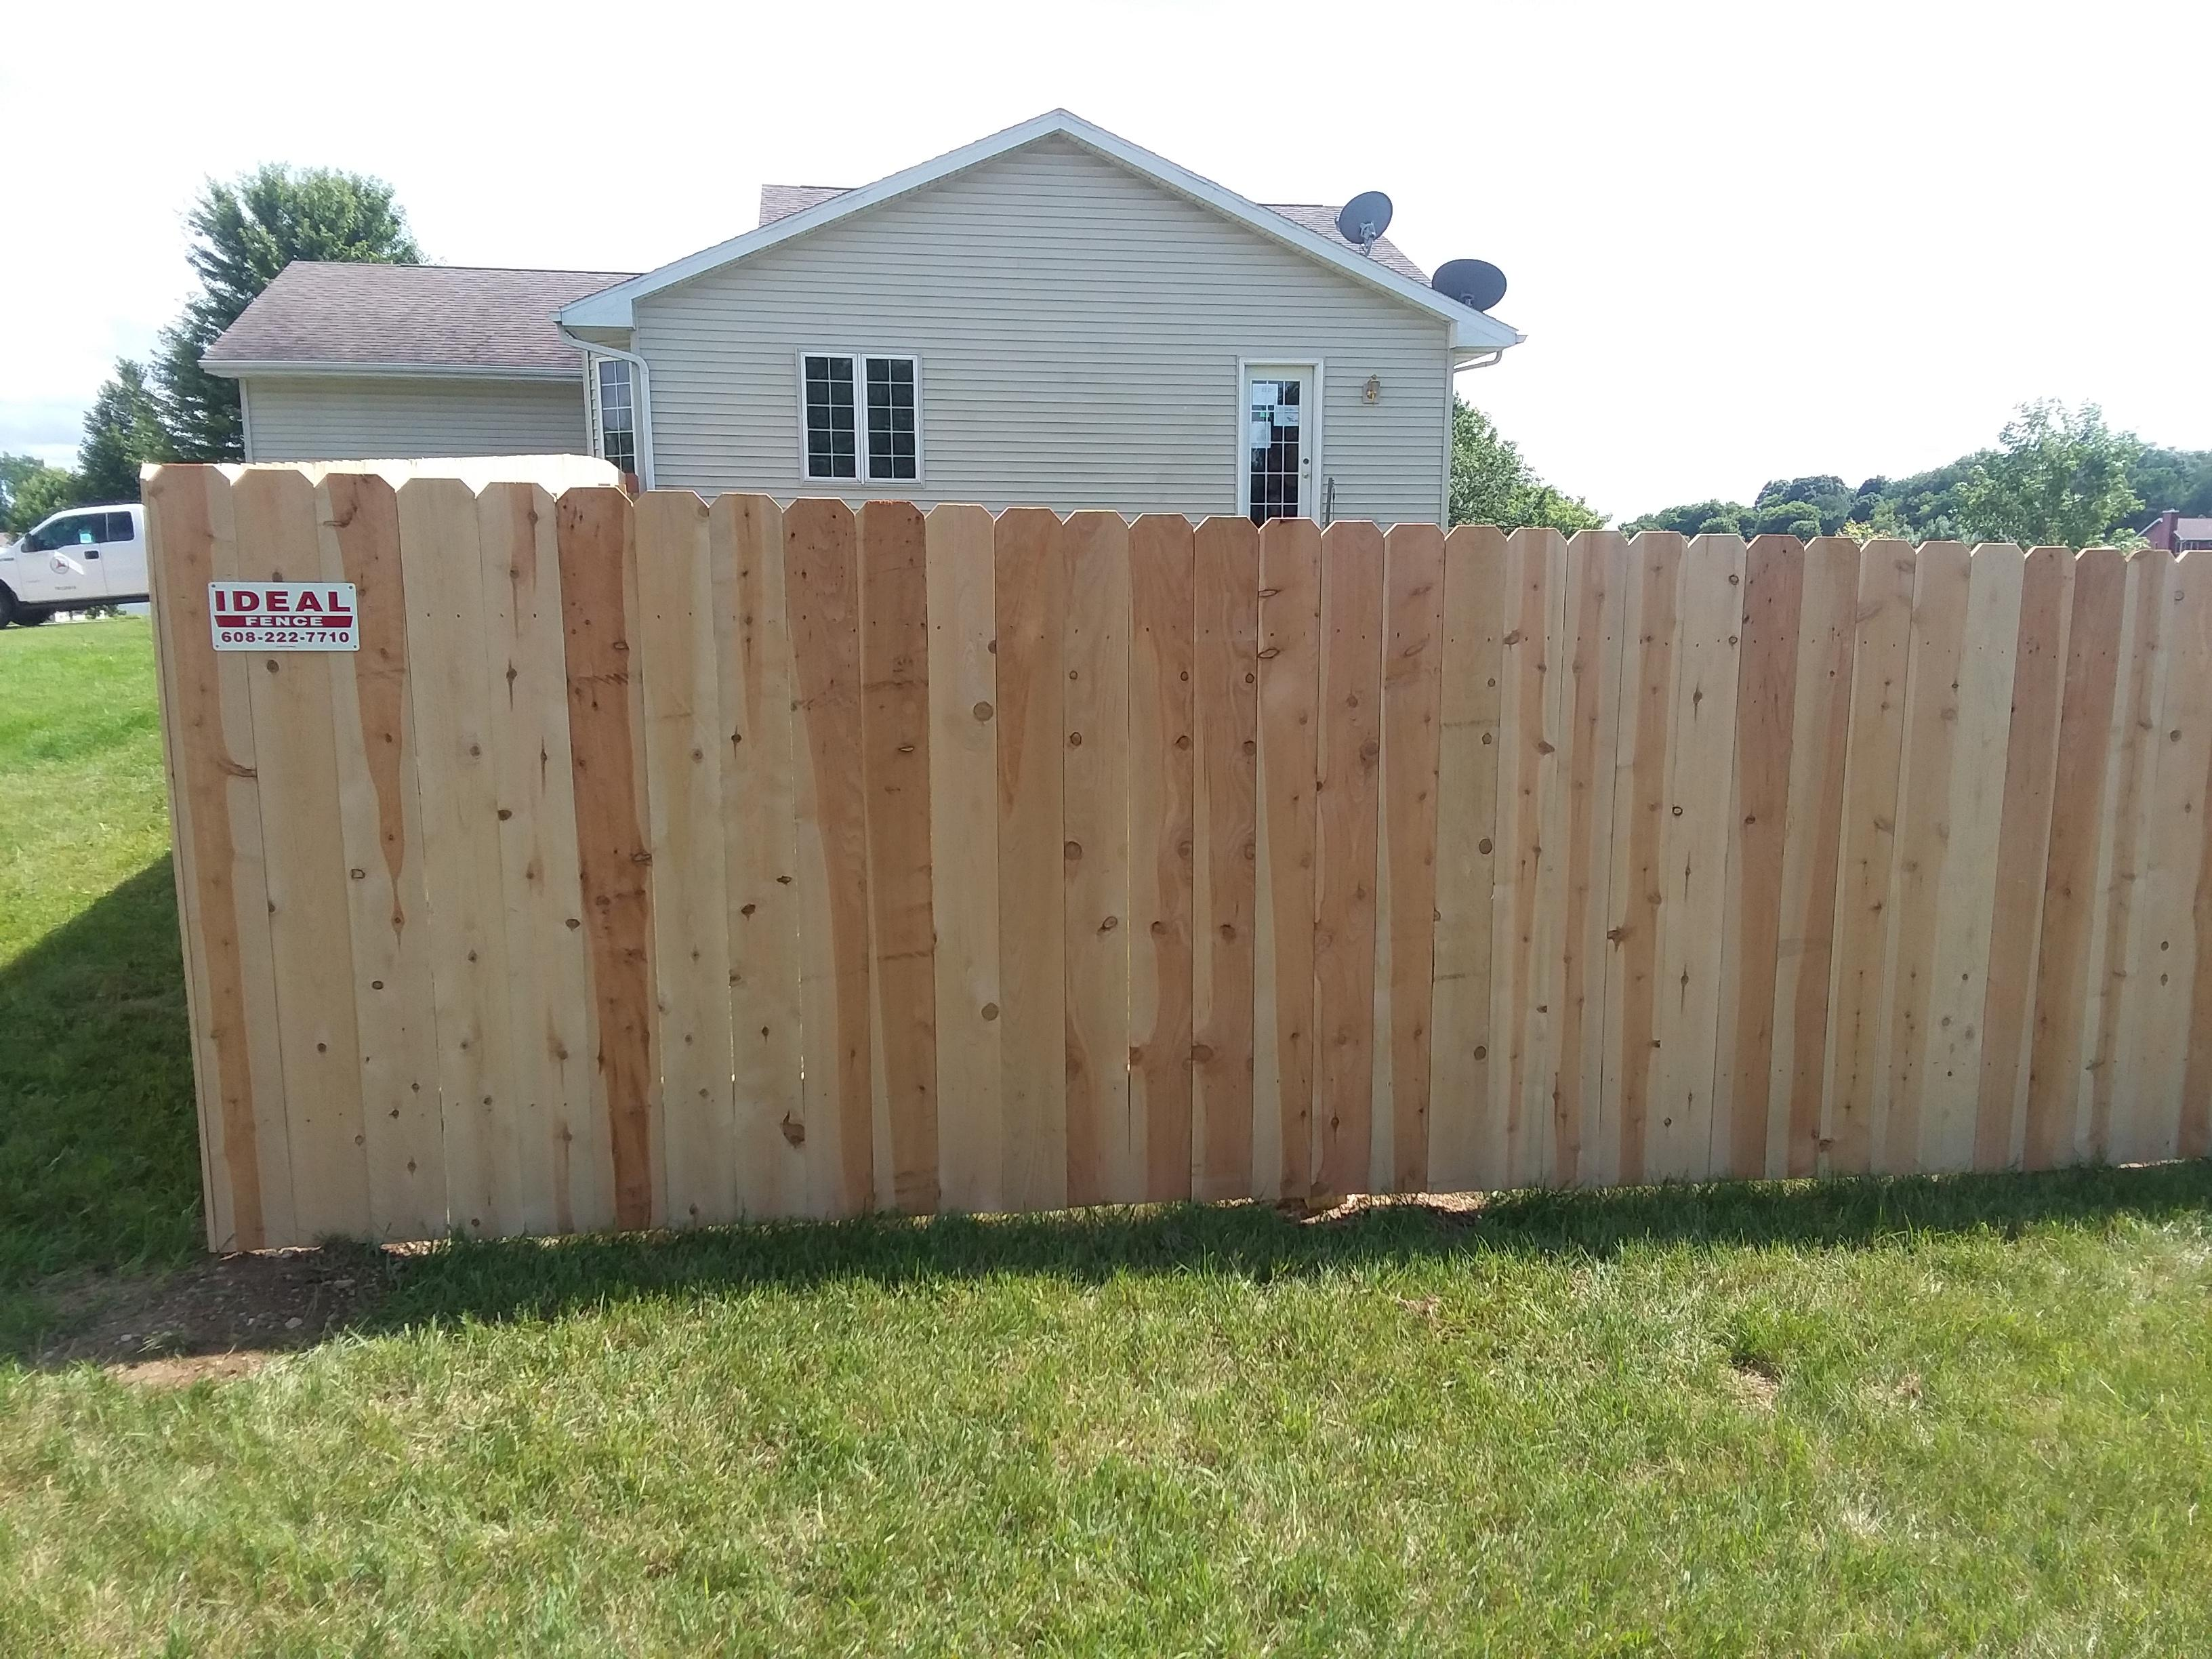 Ideal Fence of Madison Ltd in Cottage Grove, WI, photo #13